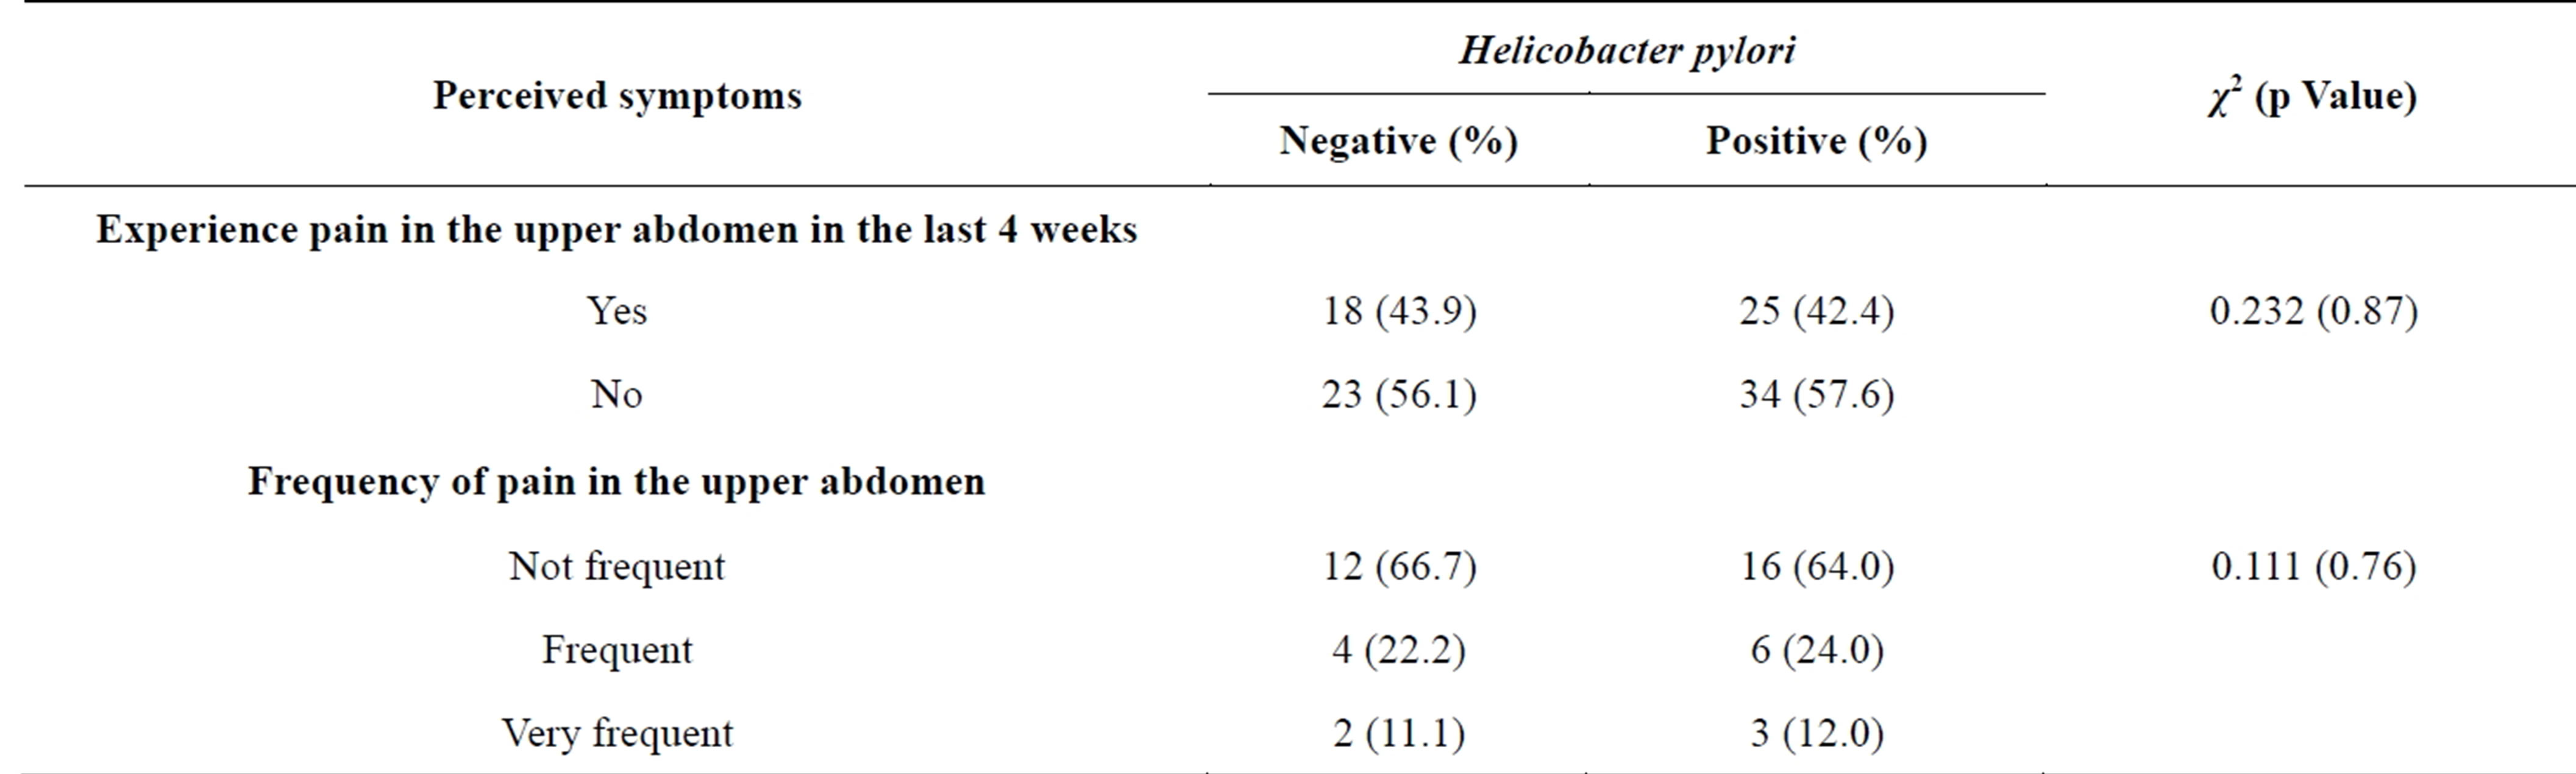 Helicobacter pylori research paper